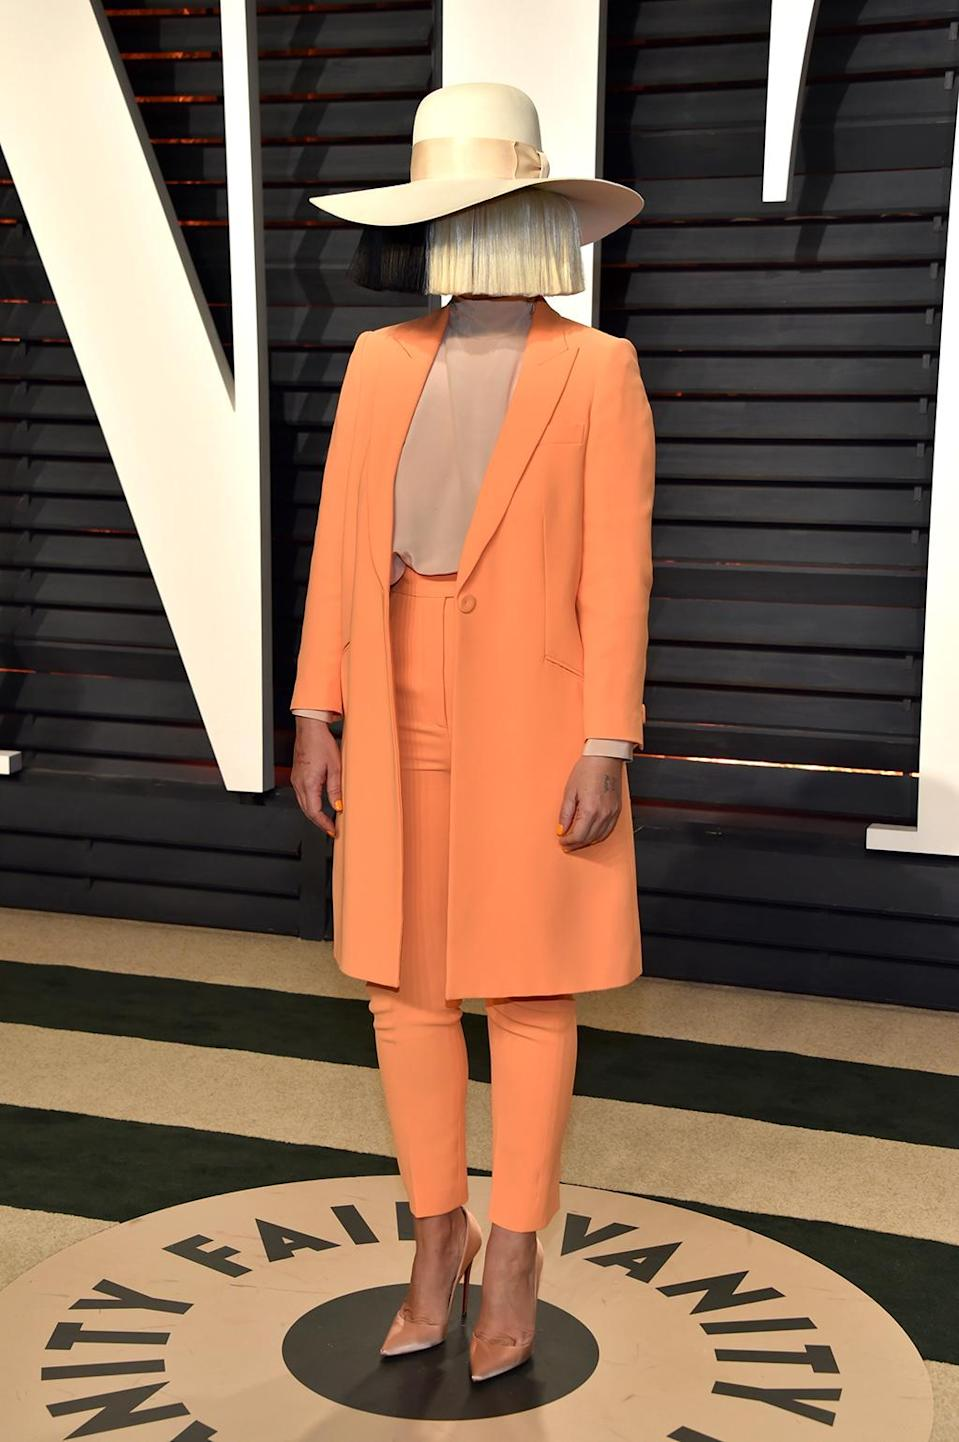 <p>Sia attends the 2017 Vanity Fair Oscar Party hosted by Graydon Carter at Wallis Annenberg Center for the Performing Arts on February 26, 2017 in Beverly Hills, California. (Photo by Pascal Le Segretain/Getty Images) </p>